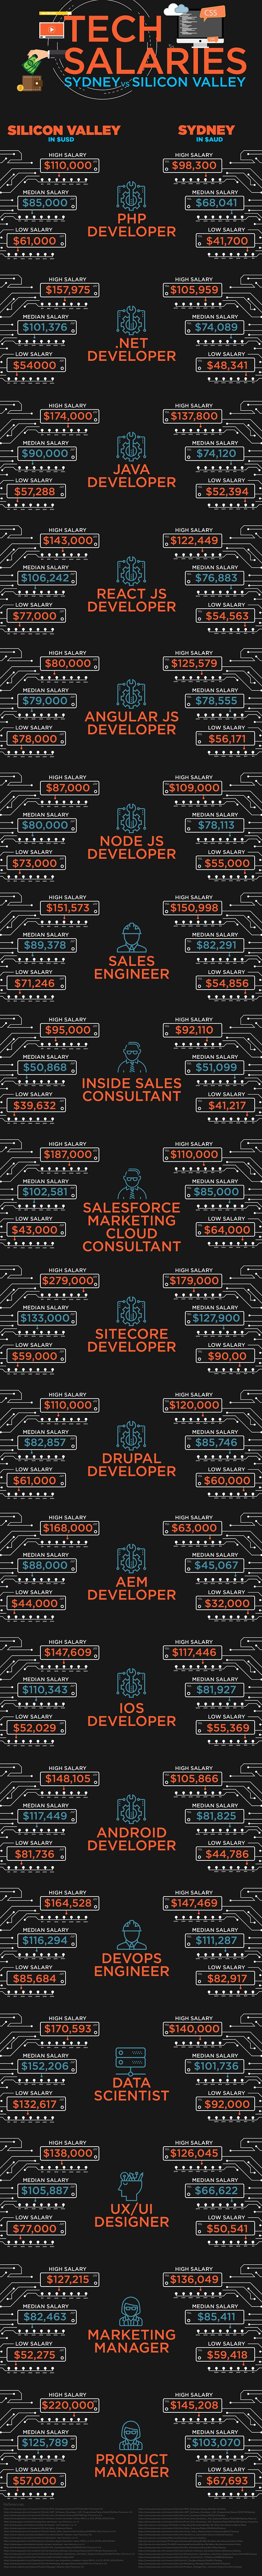 A Tech Salary Comparison of Sydney VS Silicon Valley